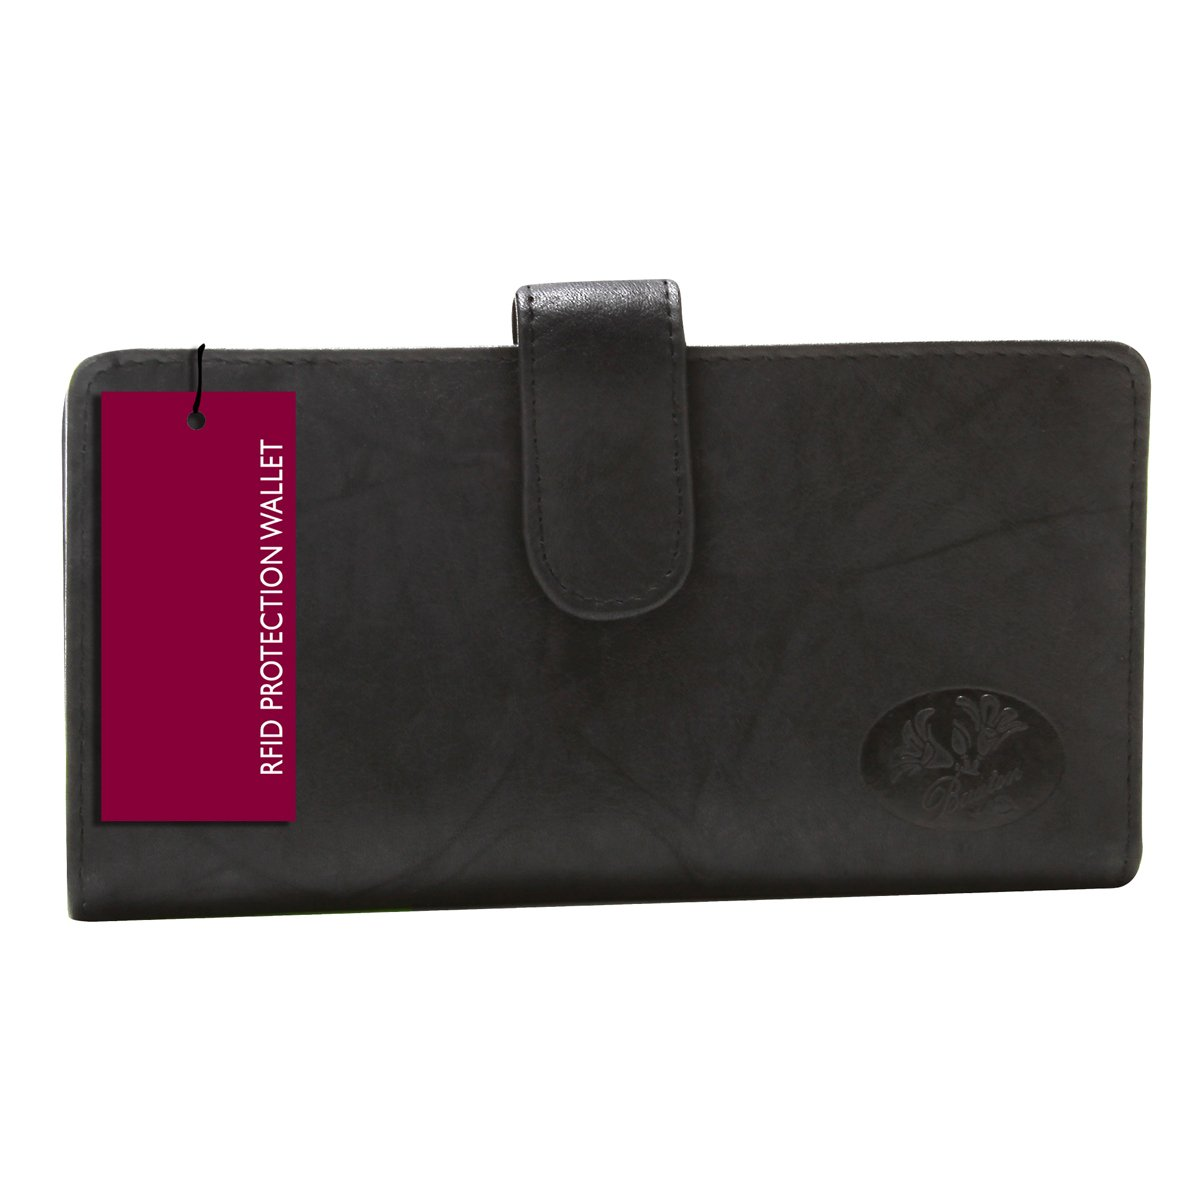 Buxton Heiress Pik Me Up - Checkbook & Credit Card Holder Wallet, Black-rfid Protected by Buxton (Image #1)